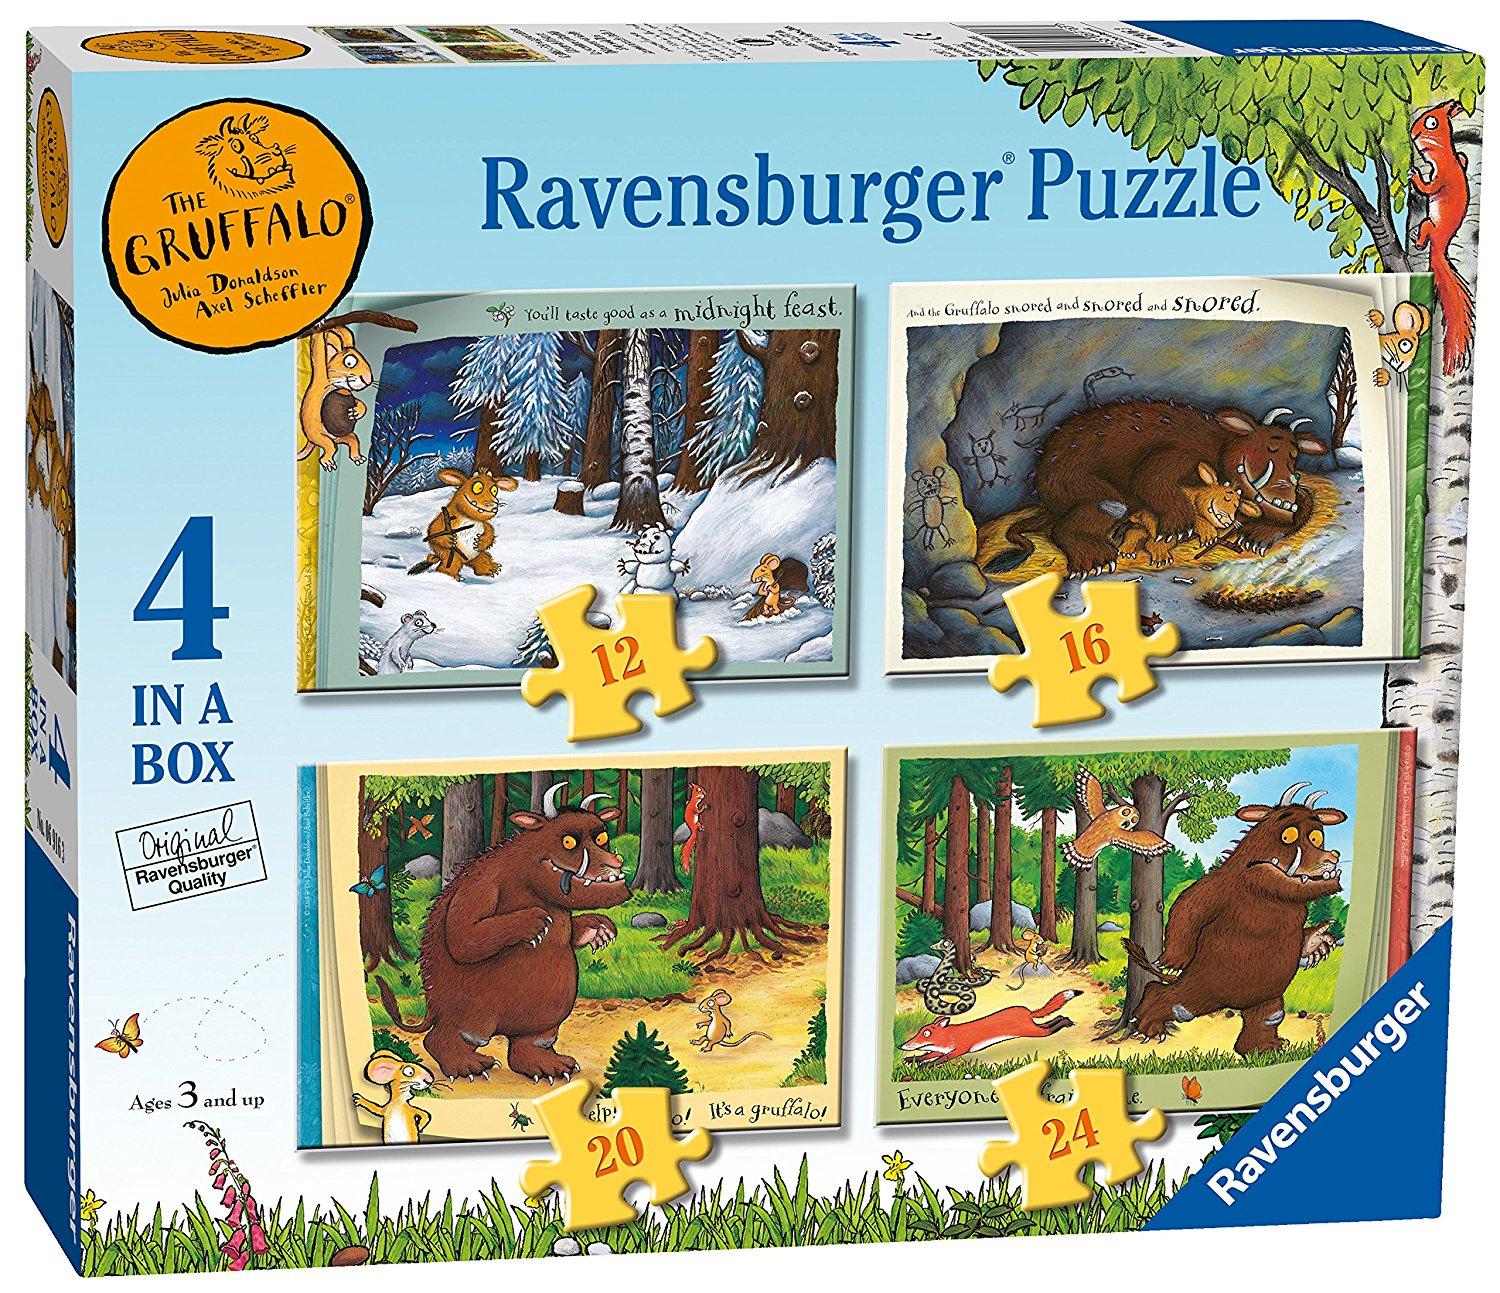 Gruffalo 4 in Box, 12pc, 16pc, 20pc & 24pc